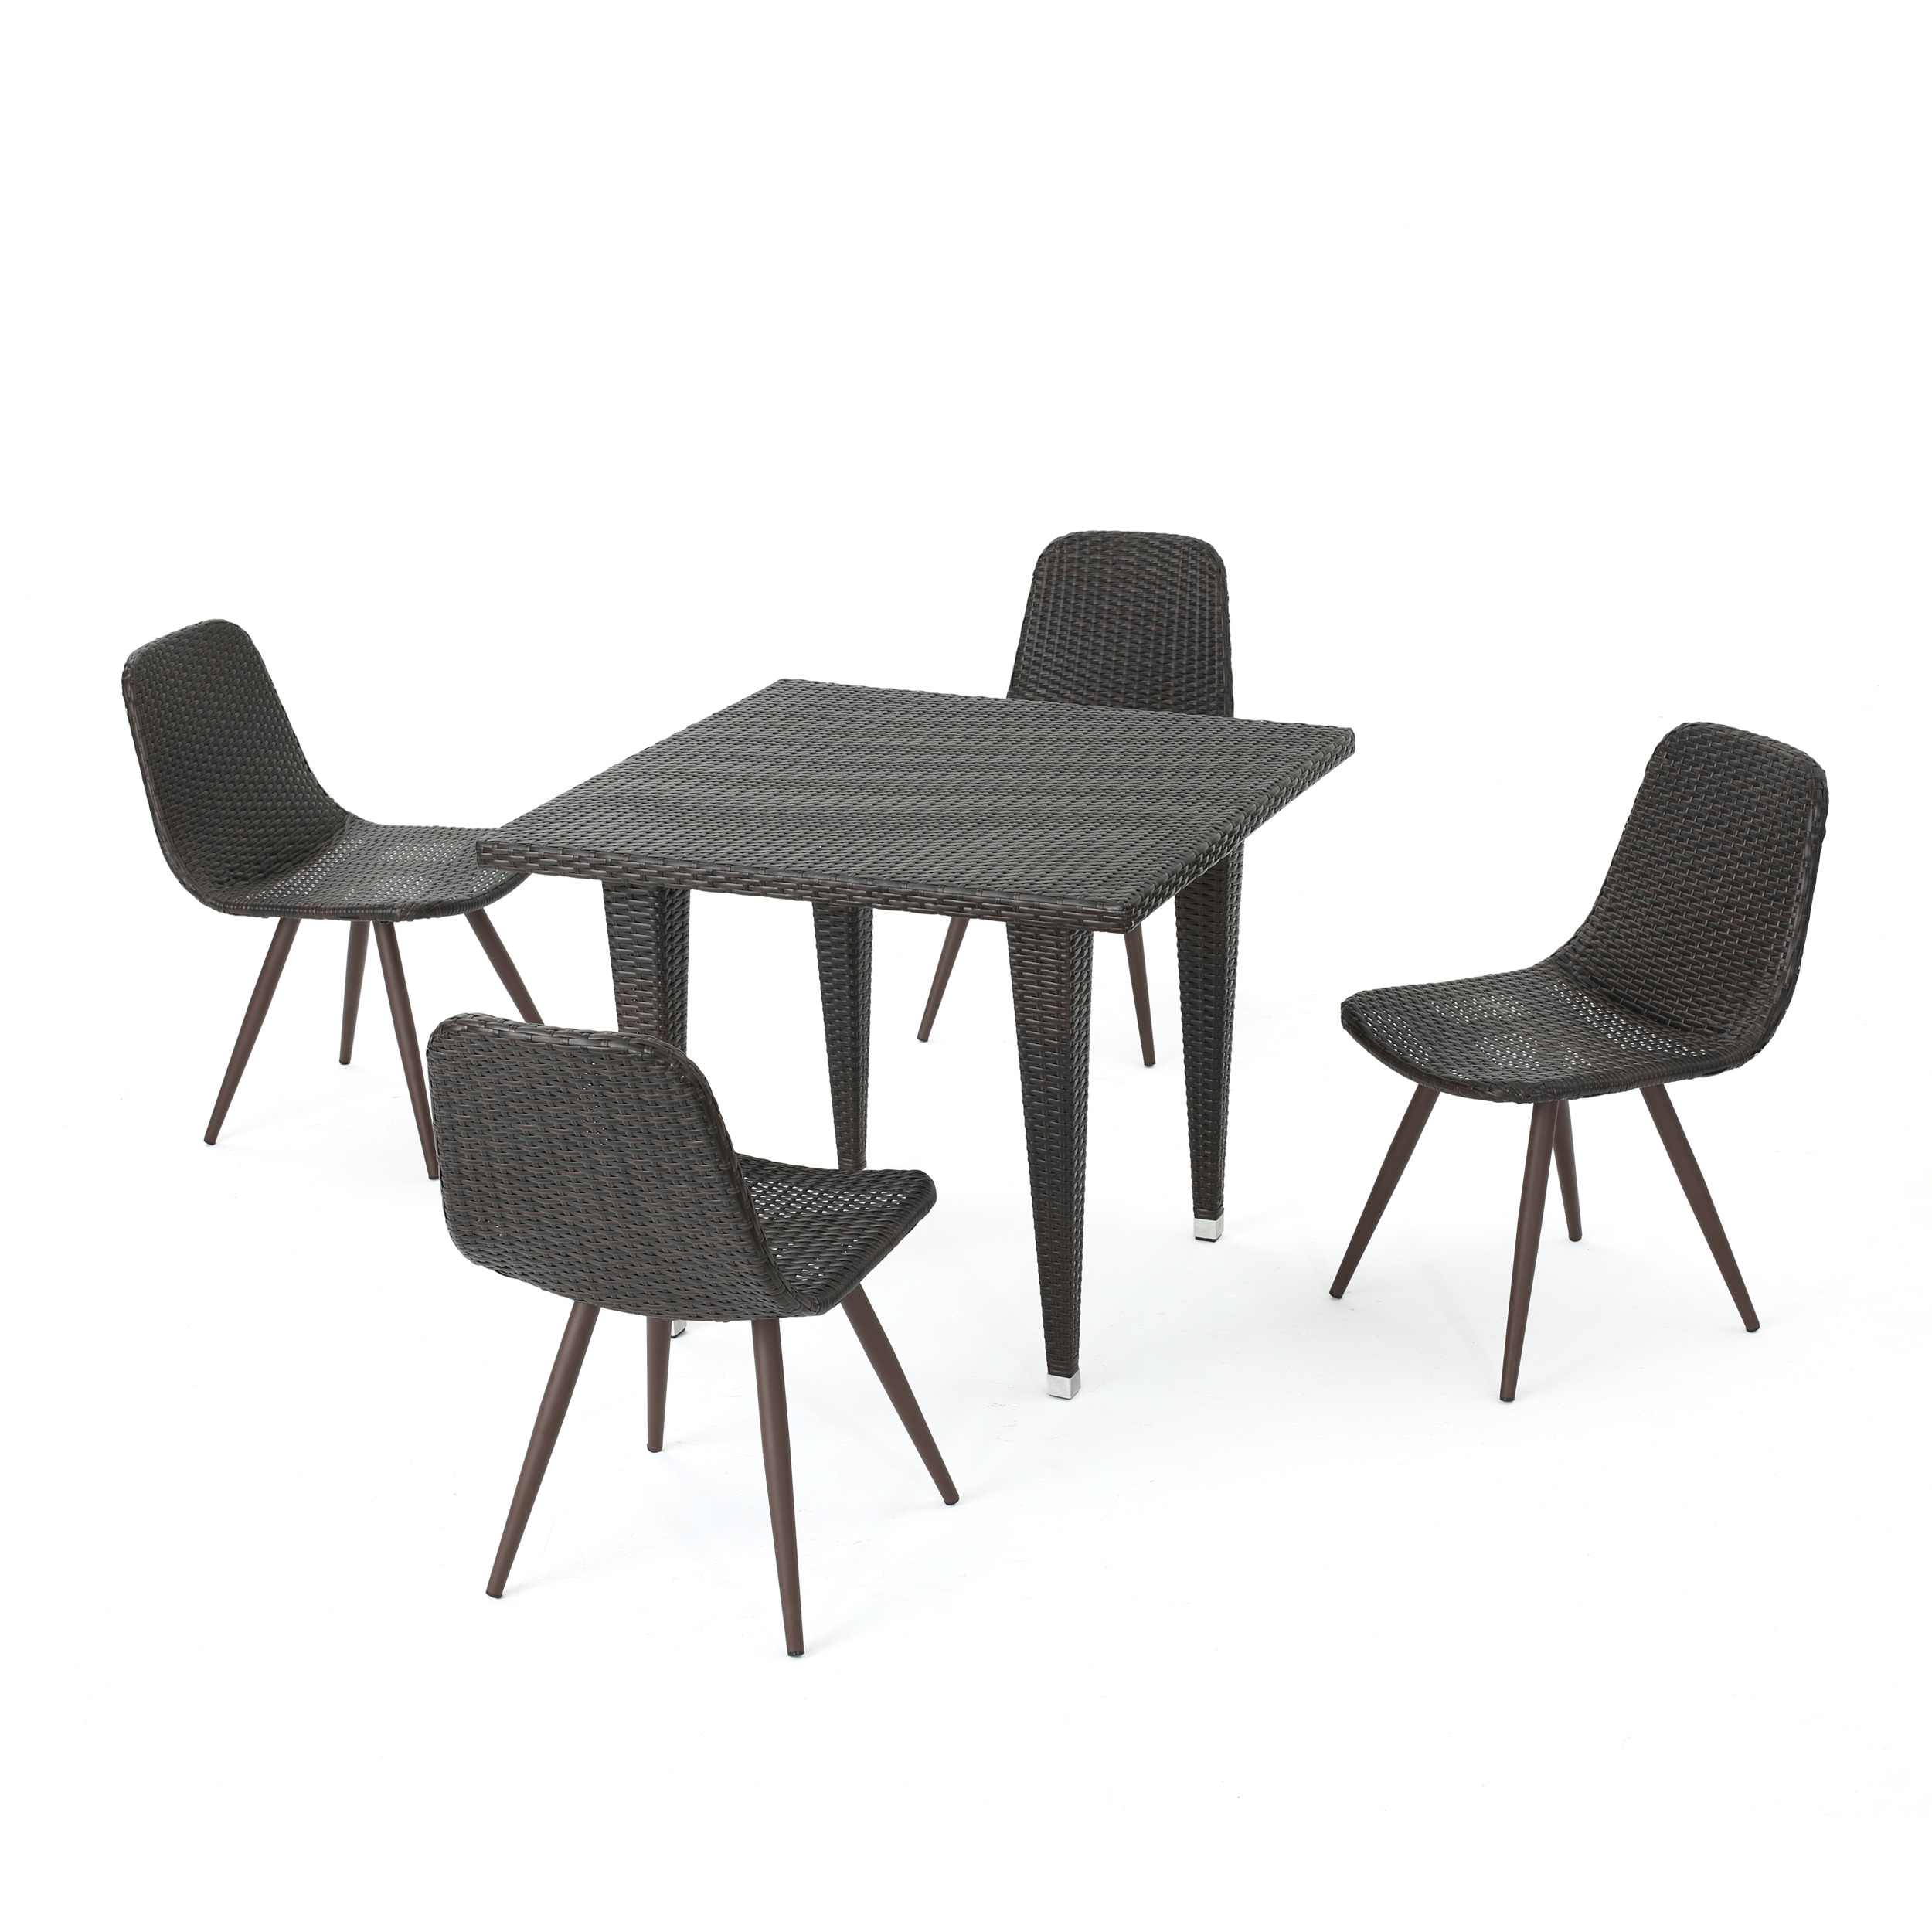 Tomley Outdoor 5 Piece Wicker 35 Inch Square Dining Set, Multibrown